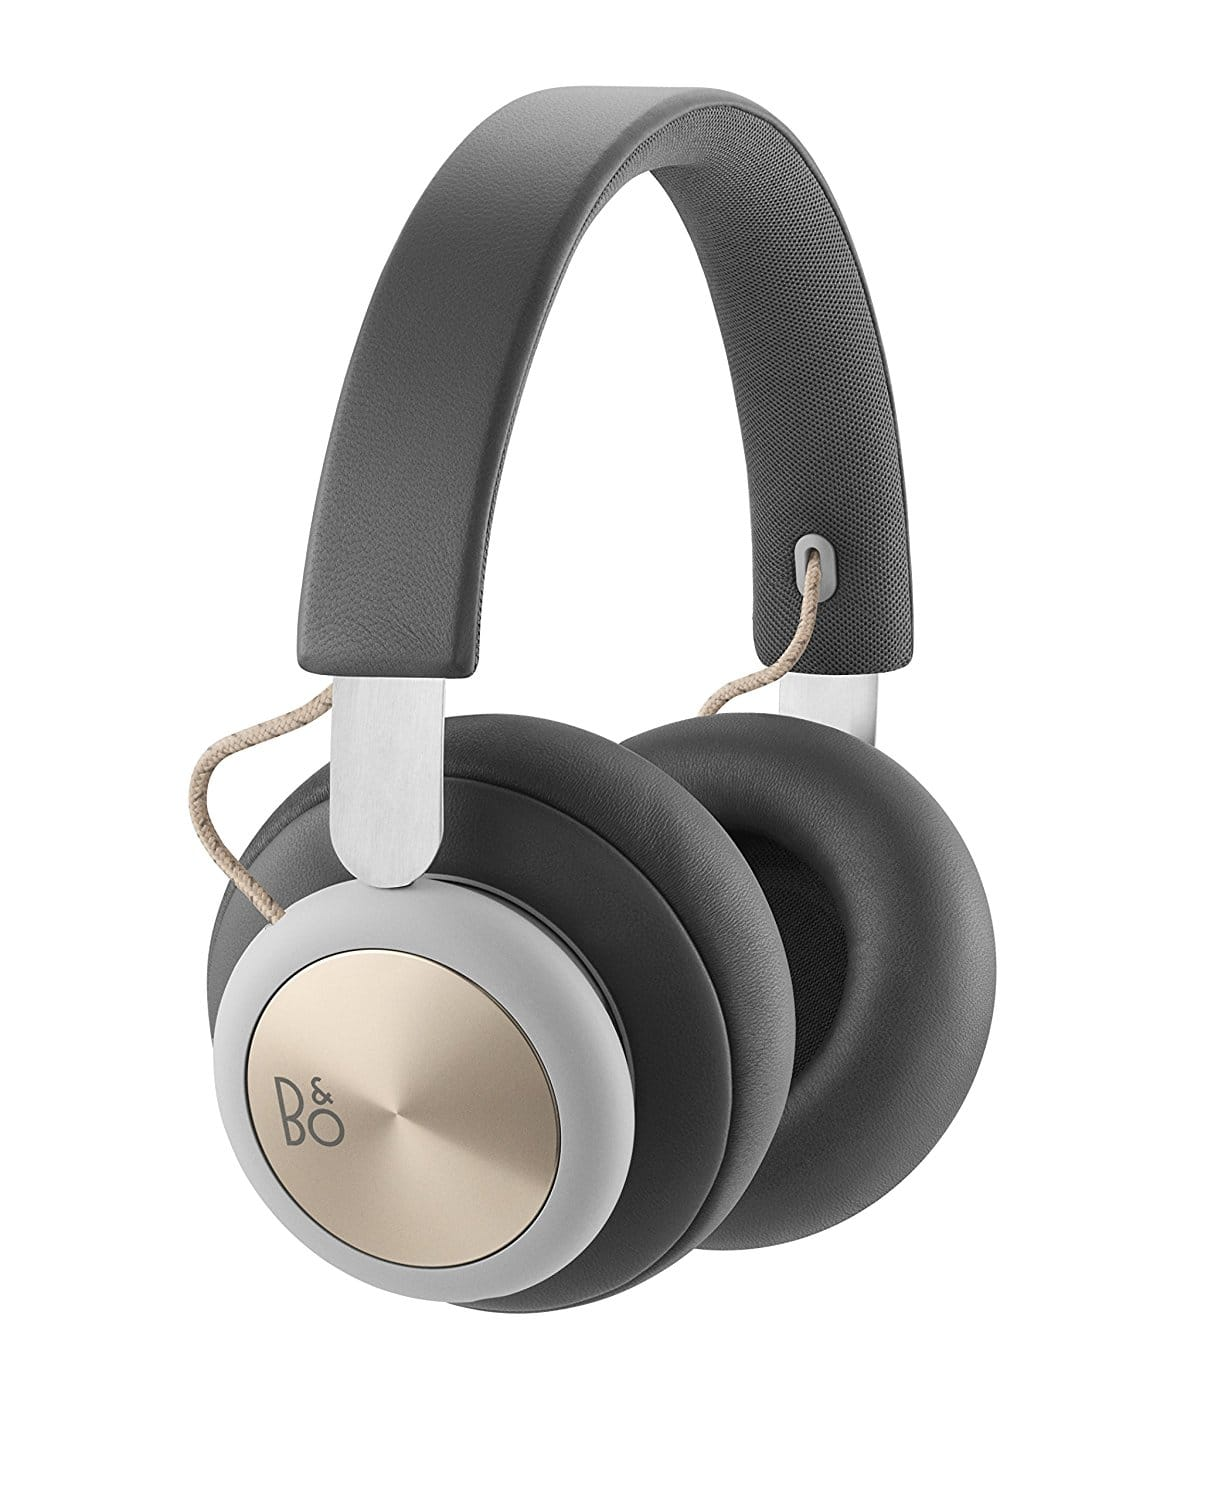 B&O PLAY by Bang & Olufsen Beoplay H4 Wireless Over-Ear Headphones, Bluetooth 4.2 (Charcoal Gray) $205.11